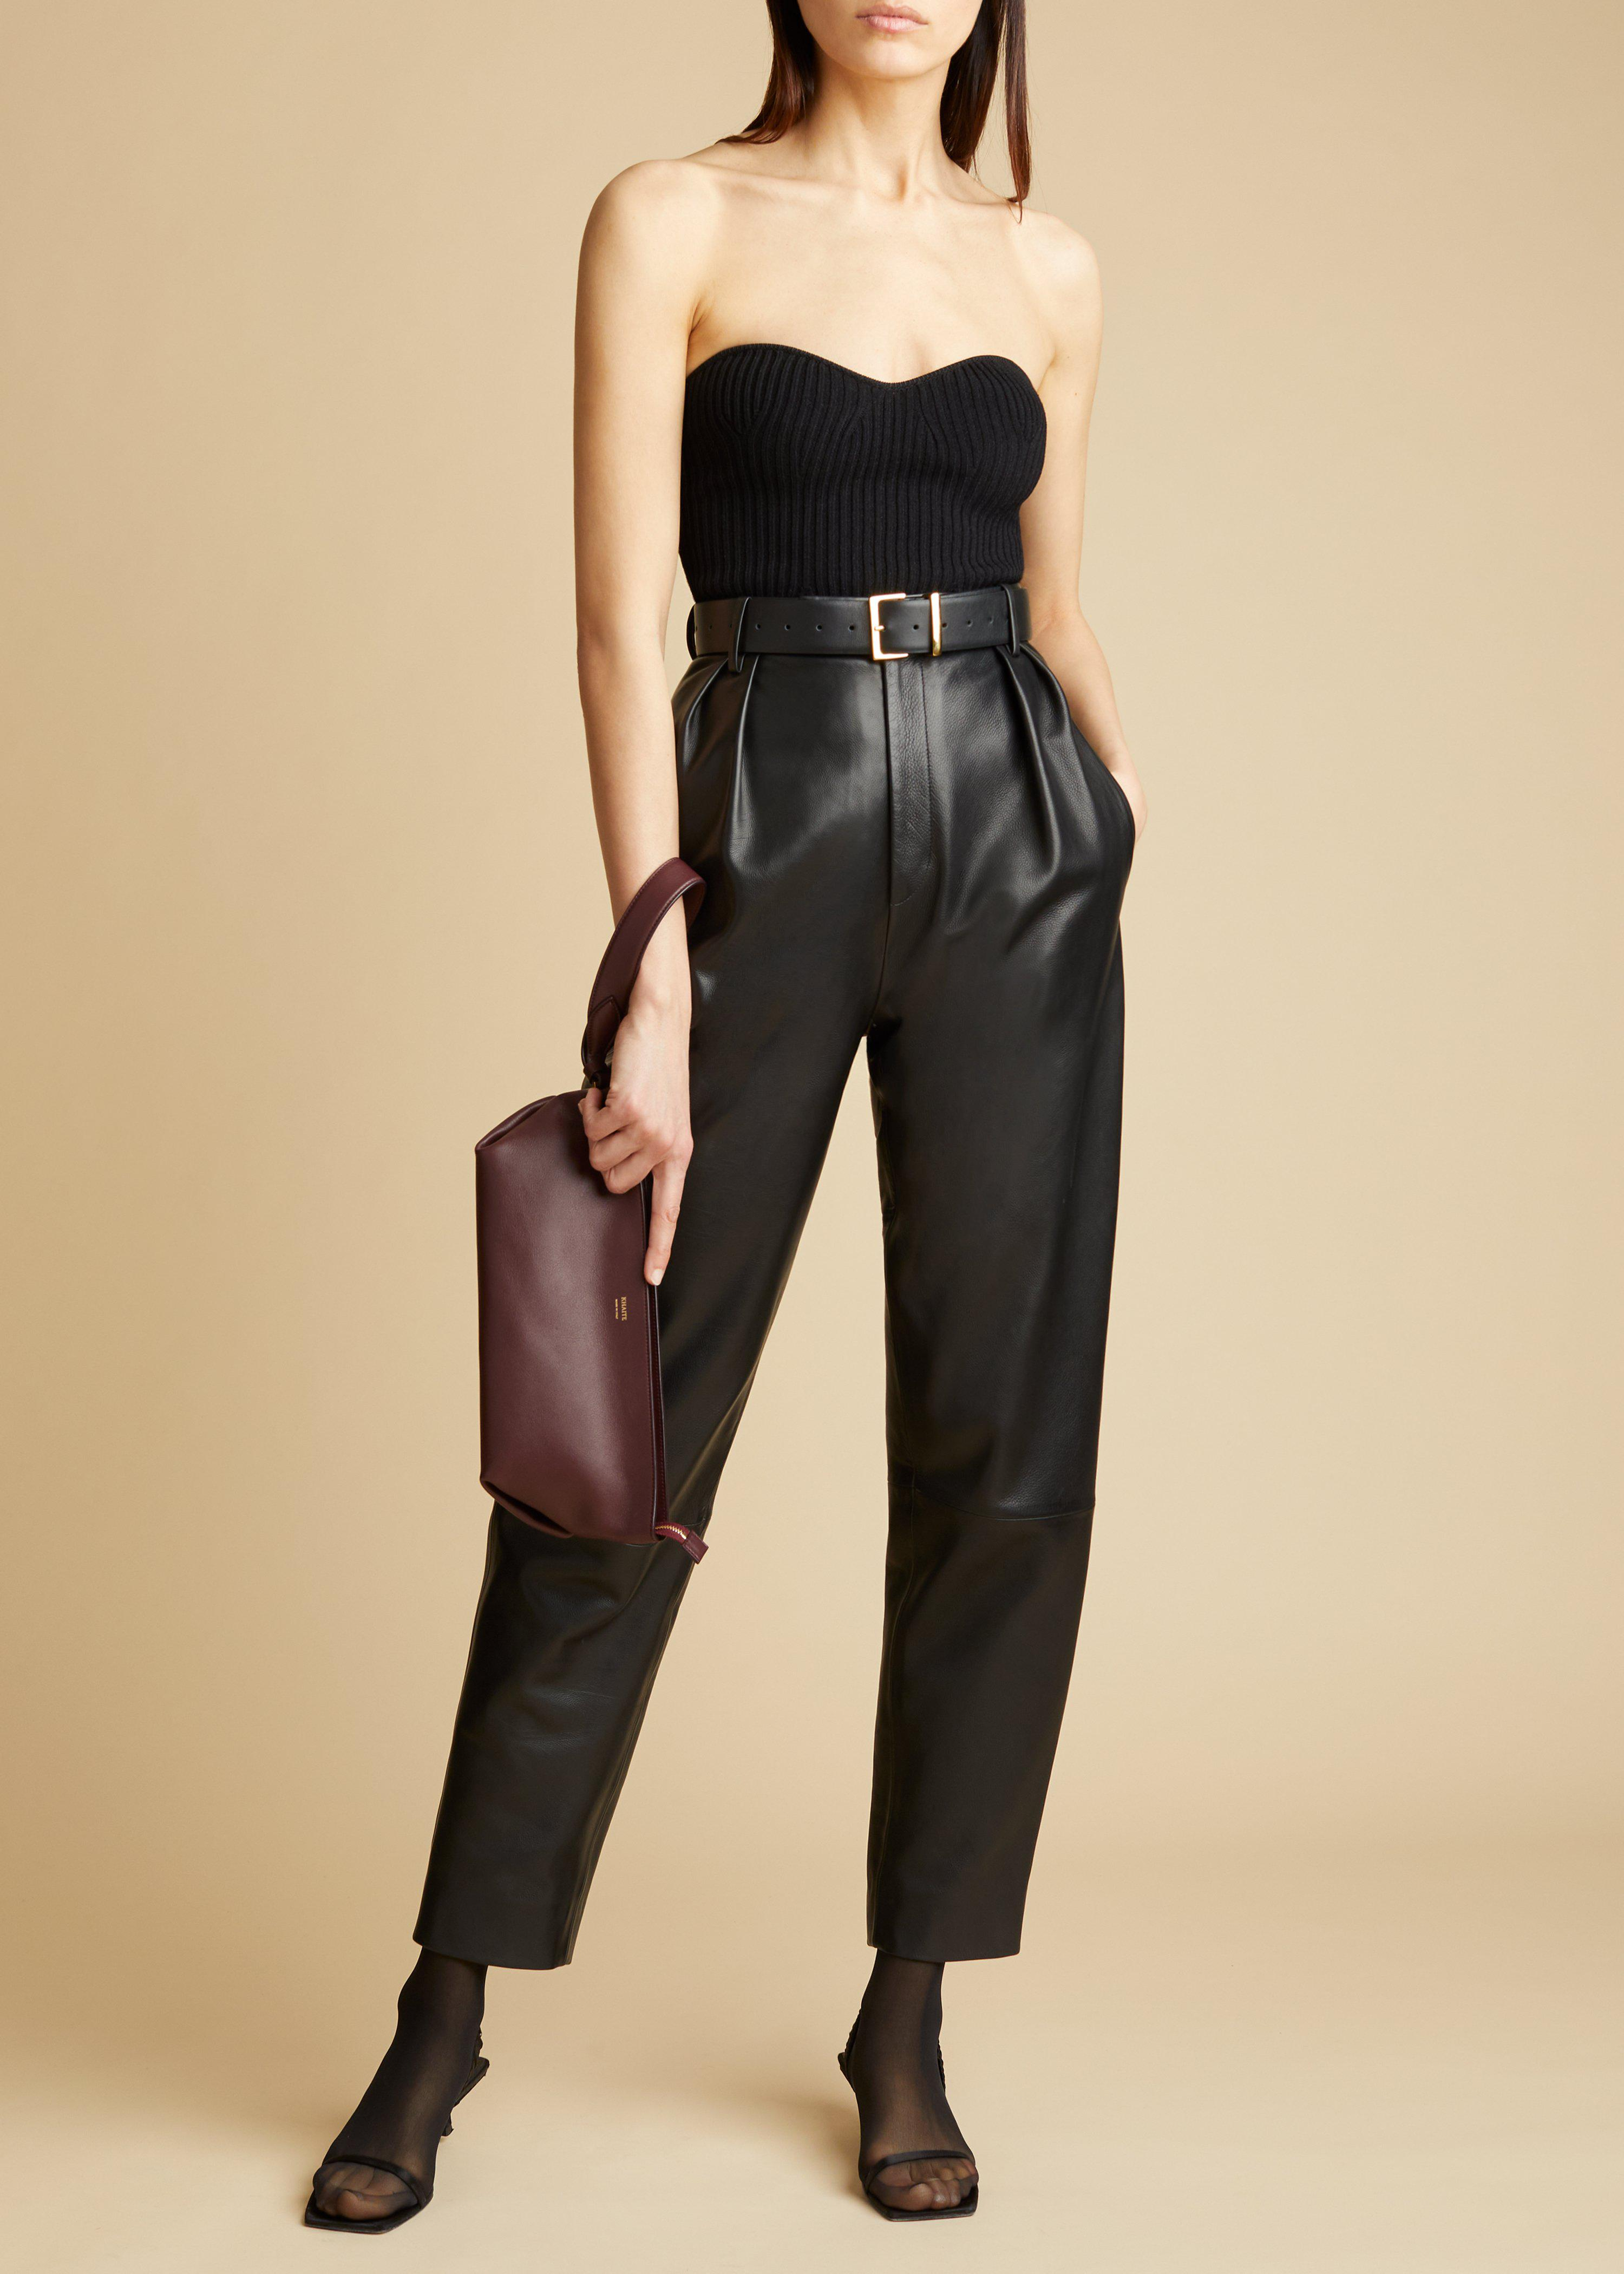 The Lucie Top in Black 1